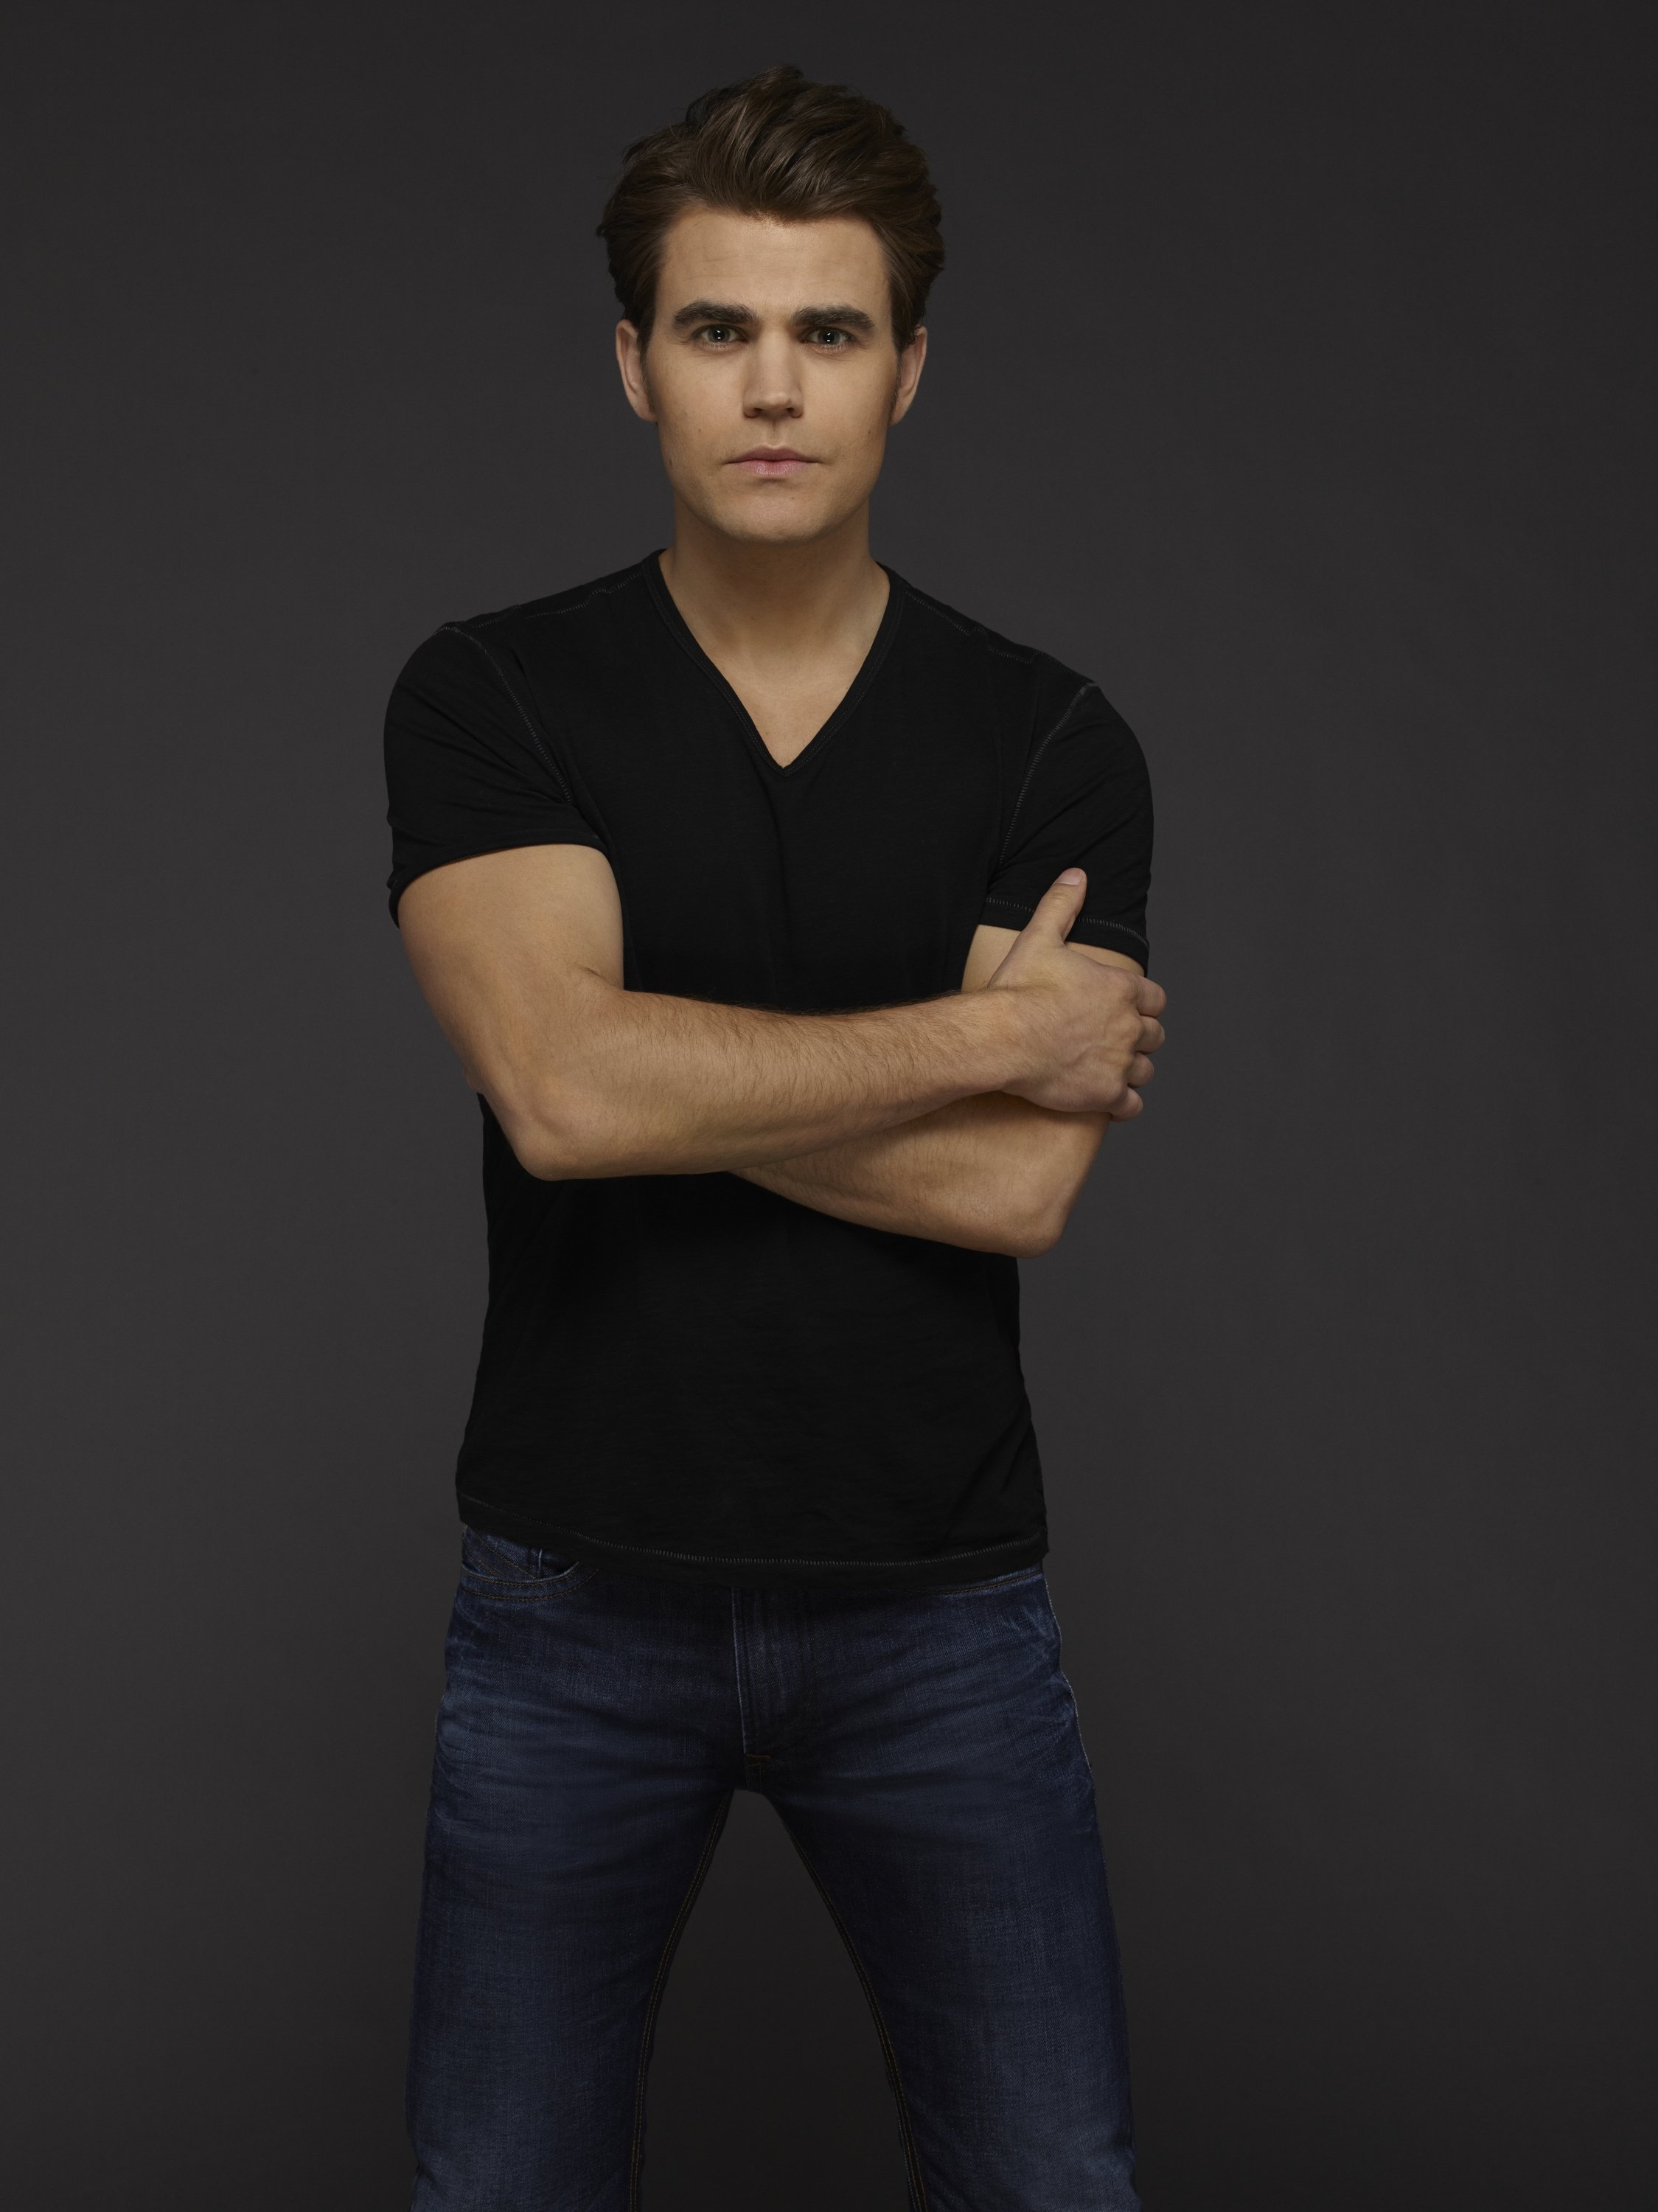 Stefan Salvatore season 6 official picture